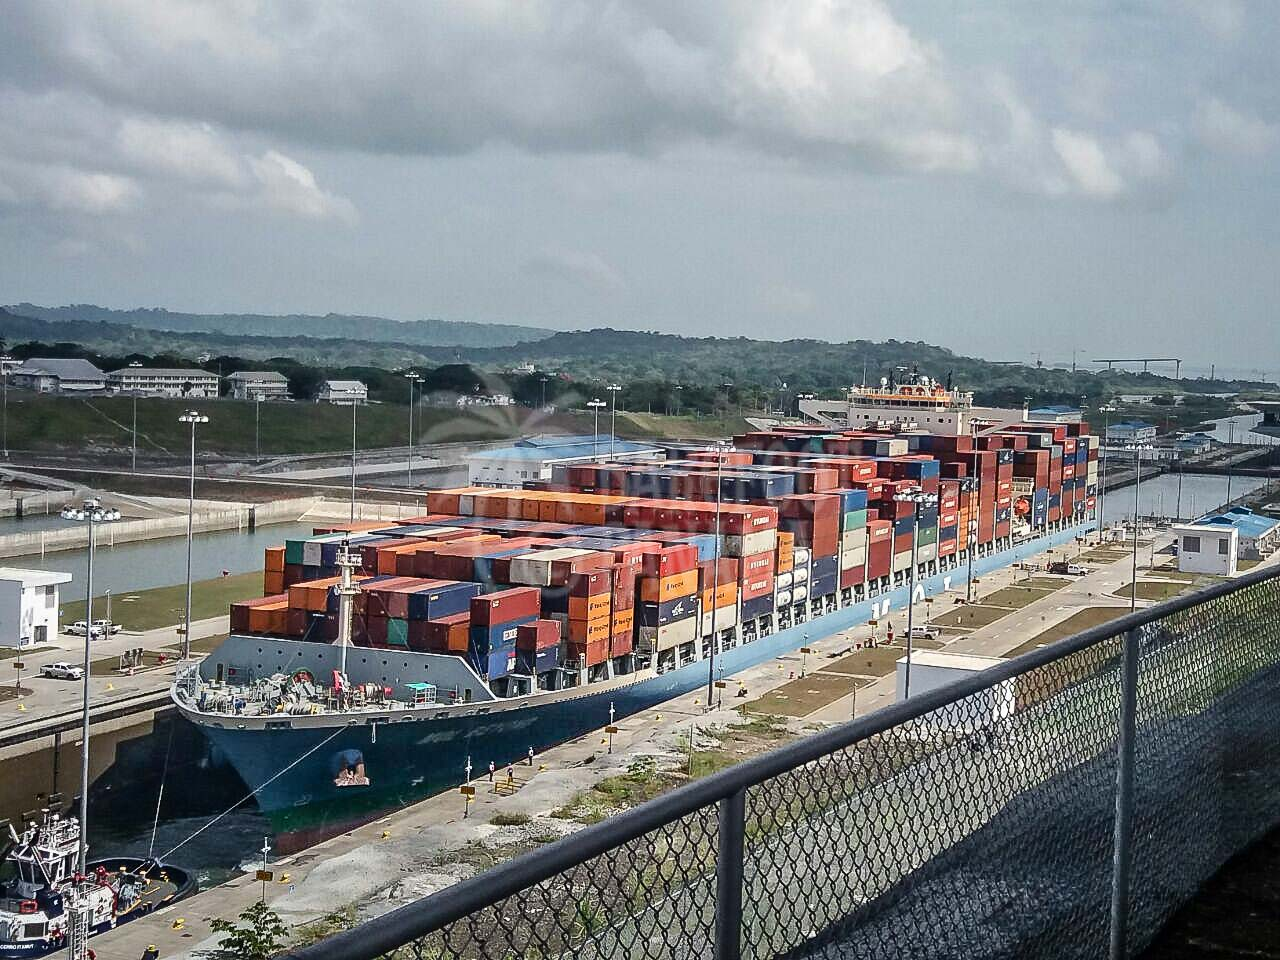 large-container-ship-navigating-the-locks